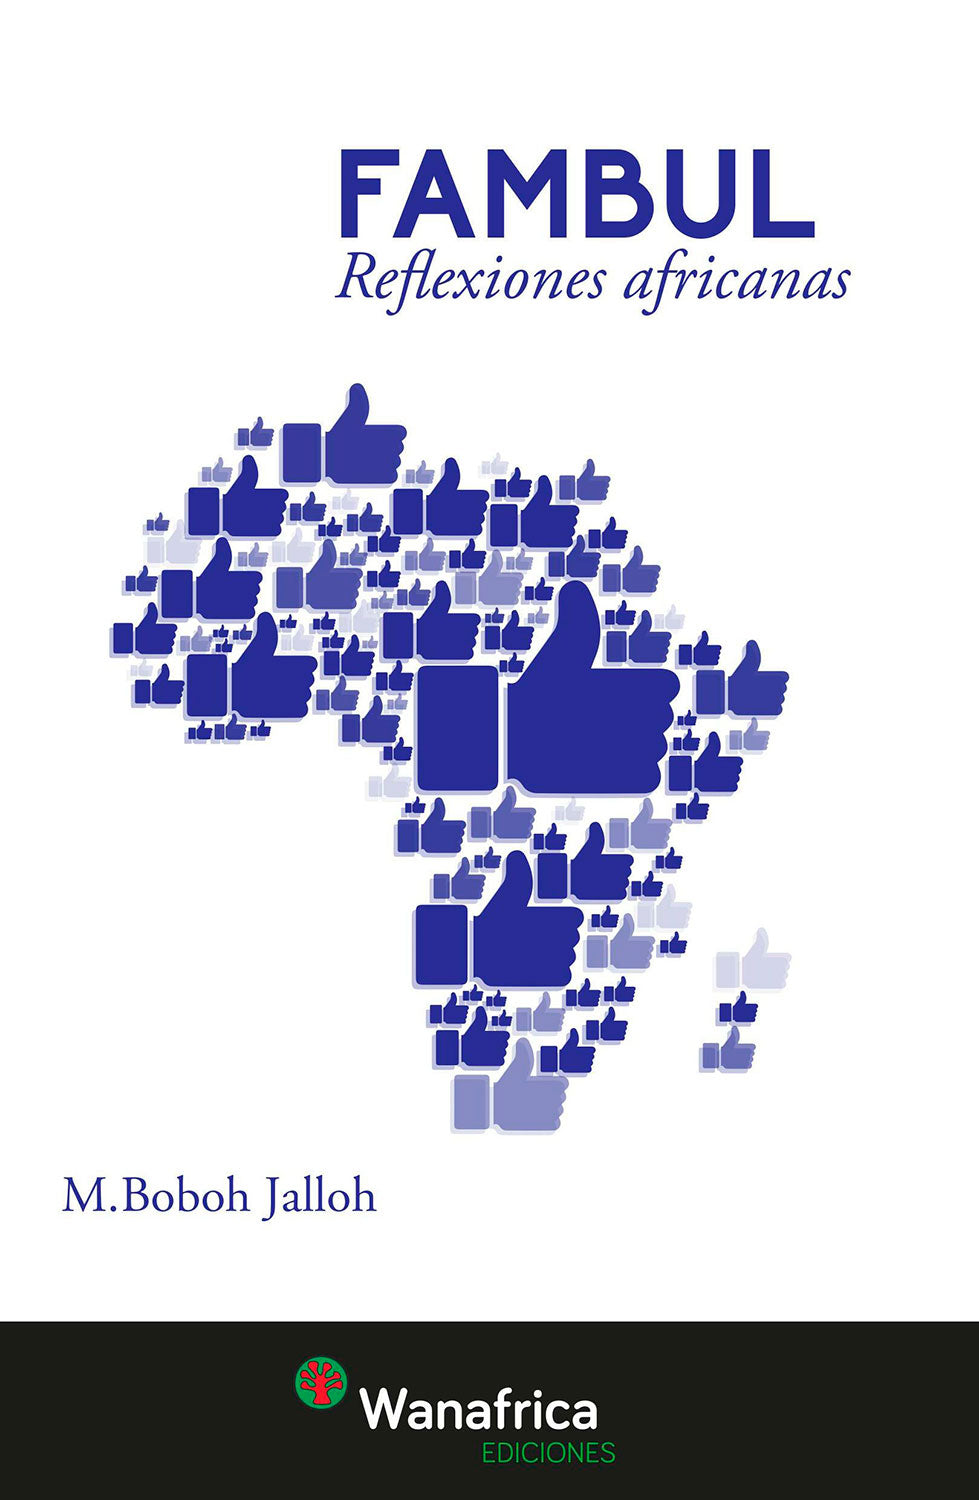 Fambul. Reflexiones africanas. Mohamed Boboh Jalloh(Autor)